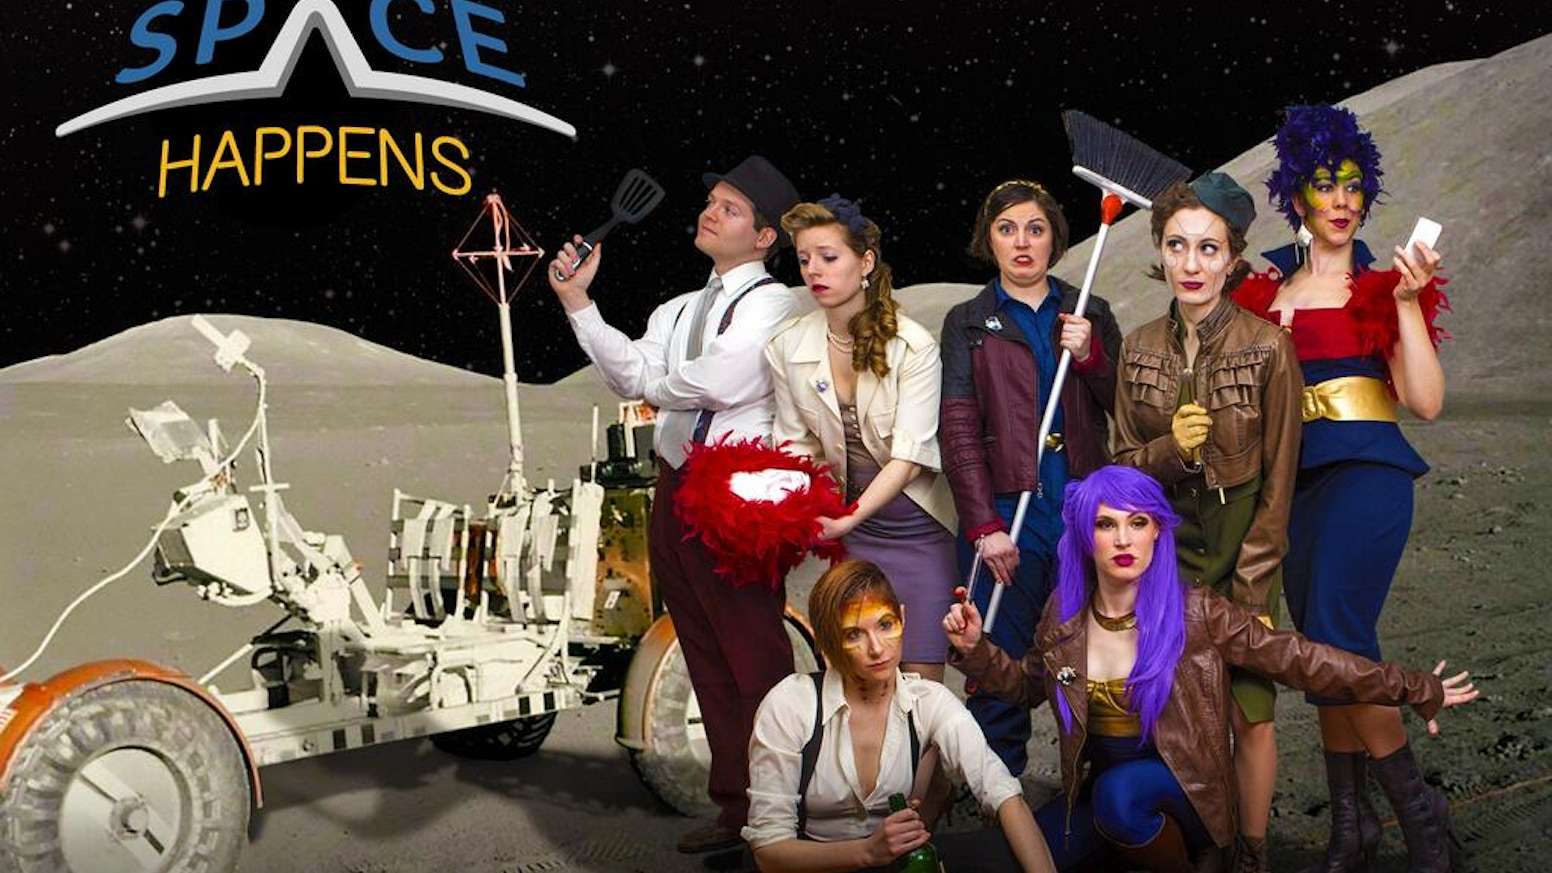 A satire developed, written & produced by women in comedy. A slash fic between feminism and science fiction. In witty webseries form.